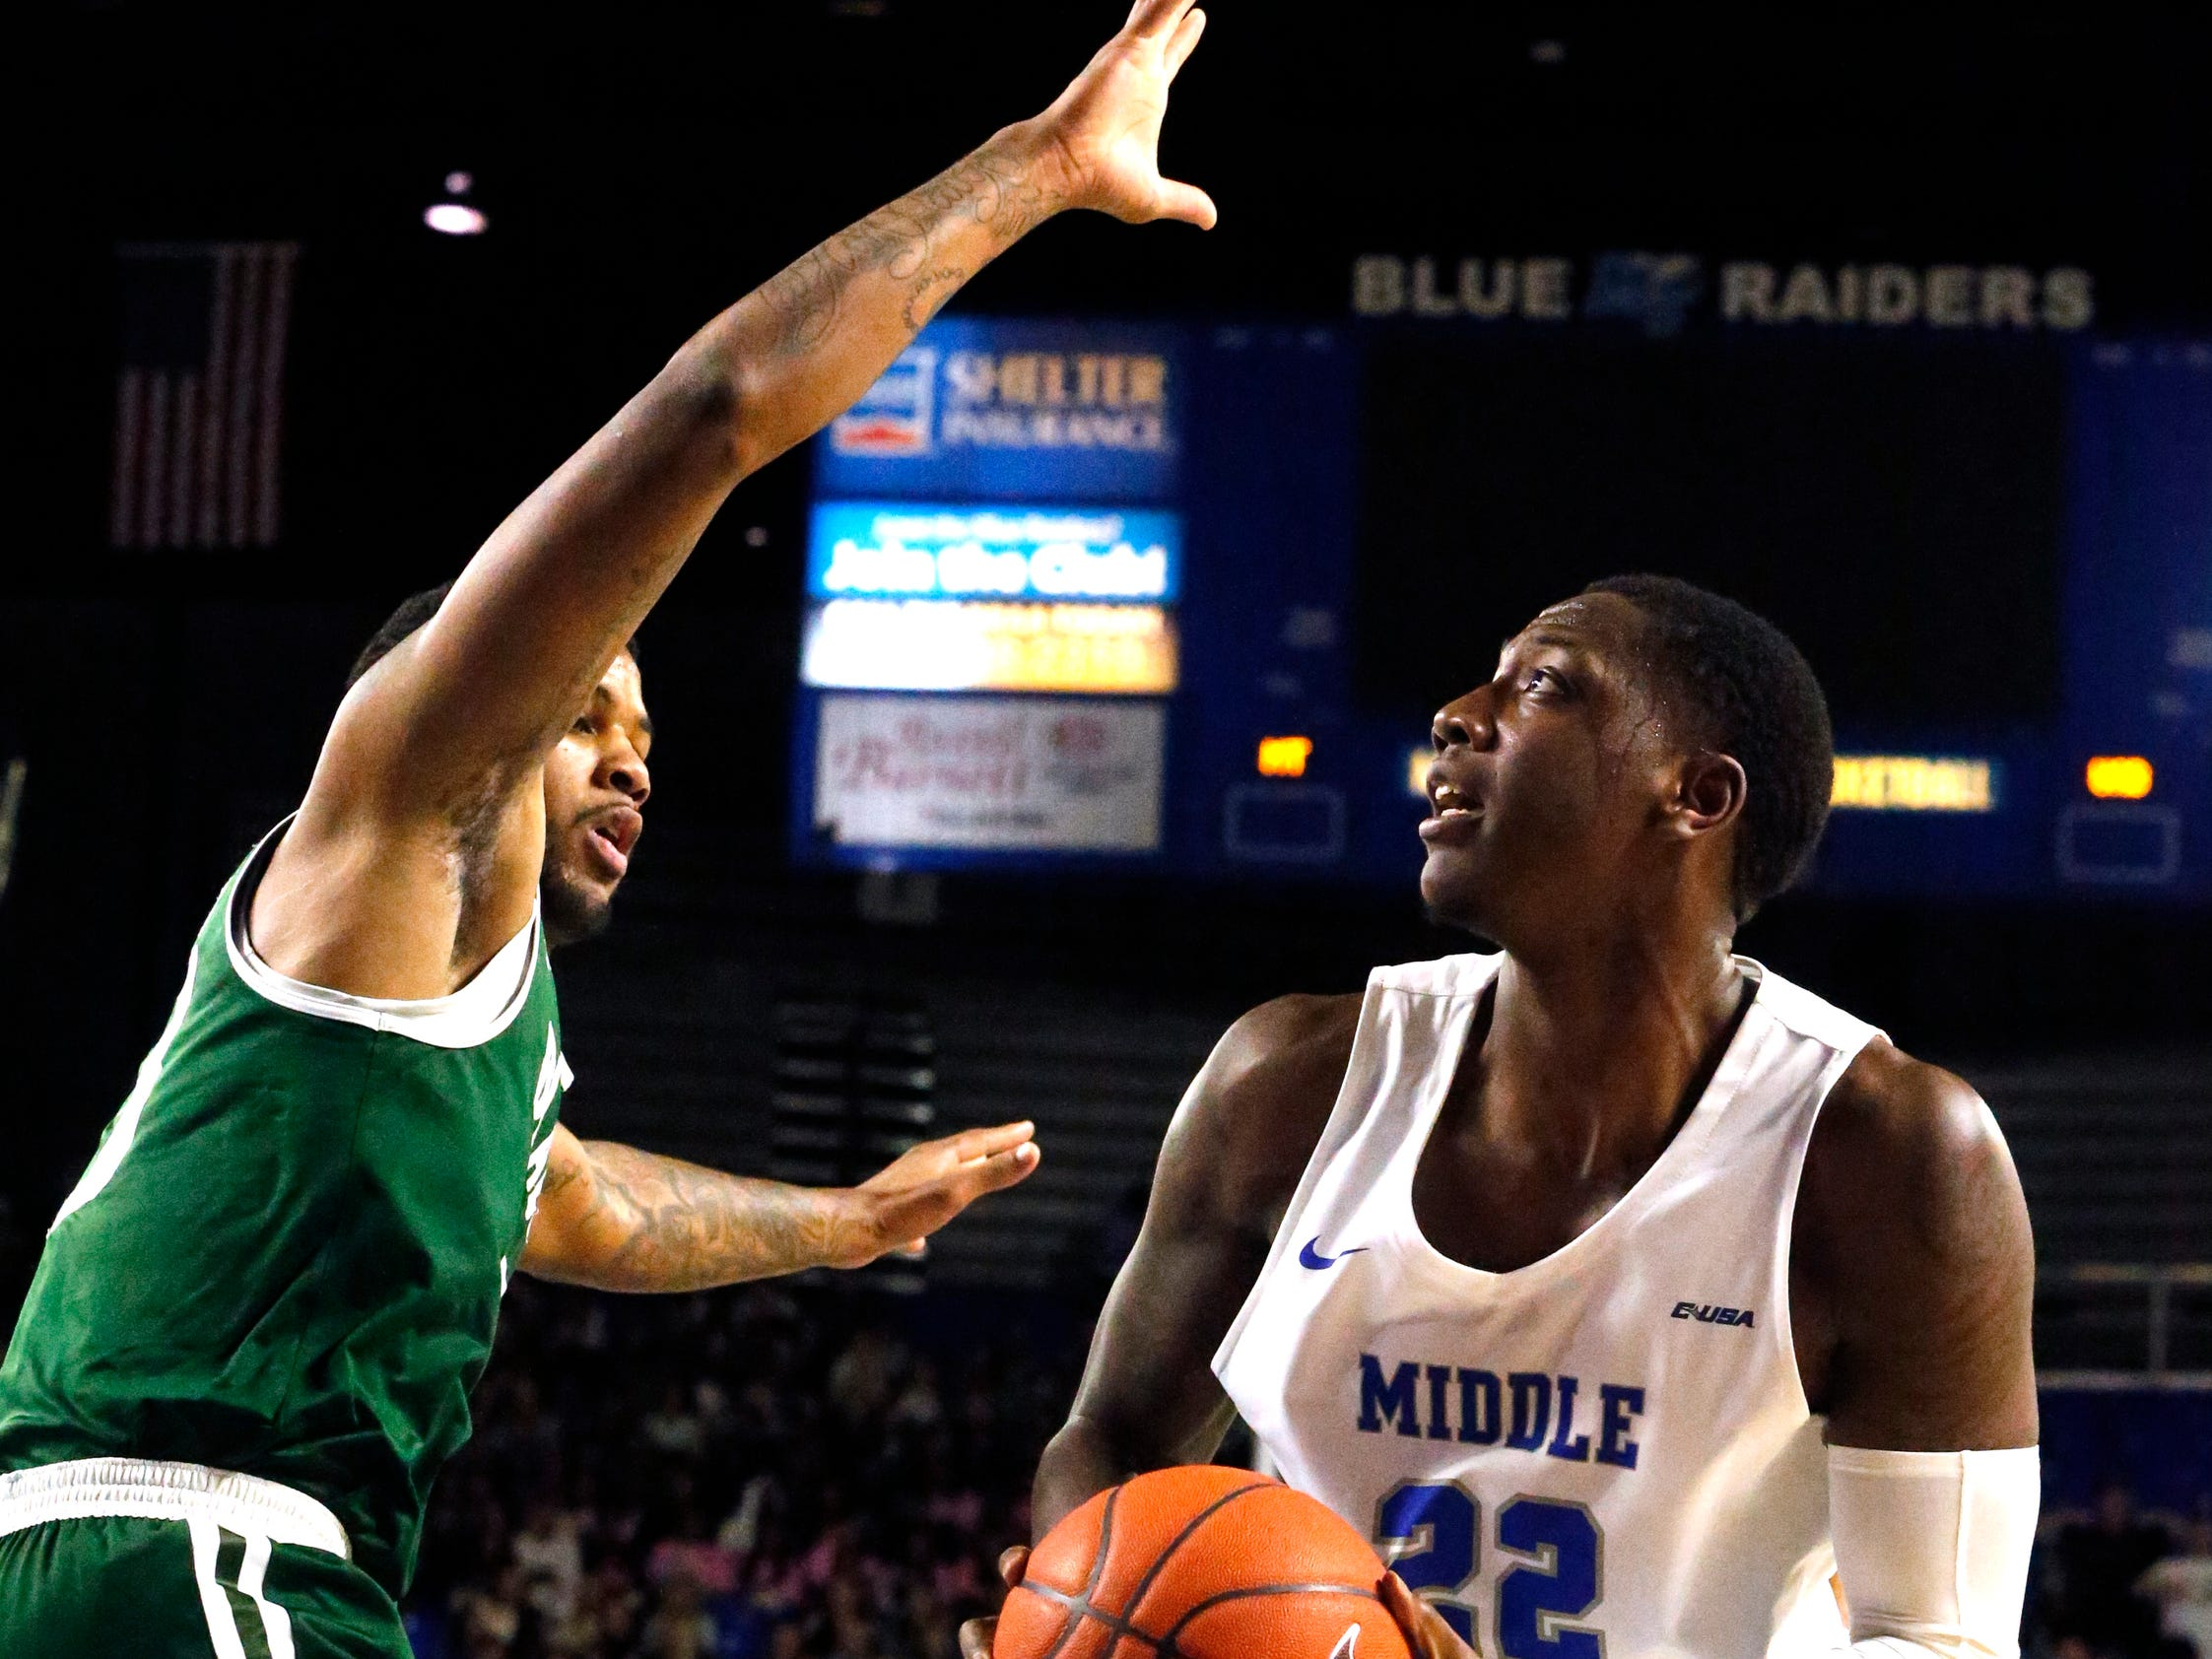 MTSU forward Reggie Scurry (22) goes up for a shot as UAB's forward Lewis Sullivan (23) guards him on Wednesday Jan. 30, 2019.